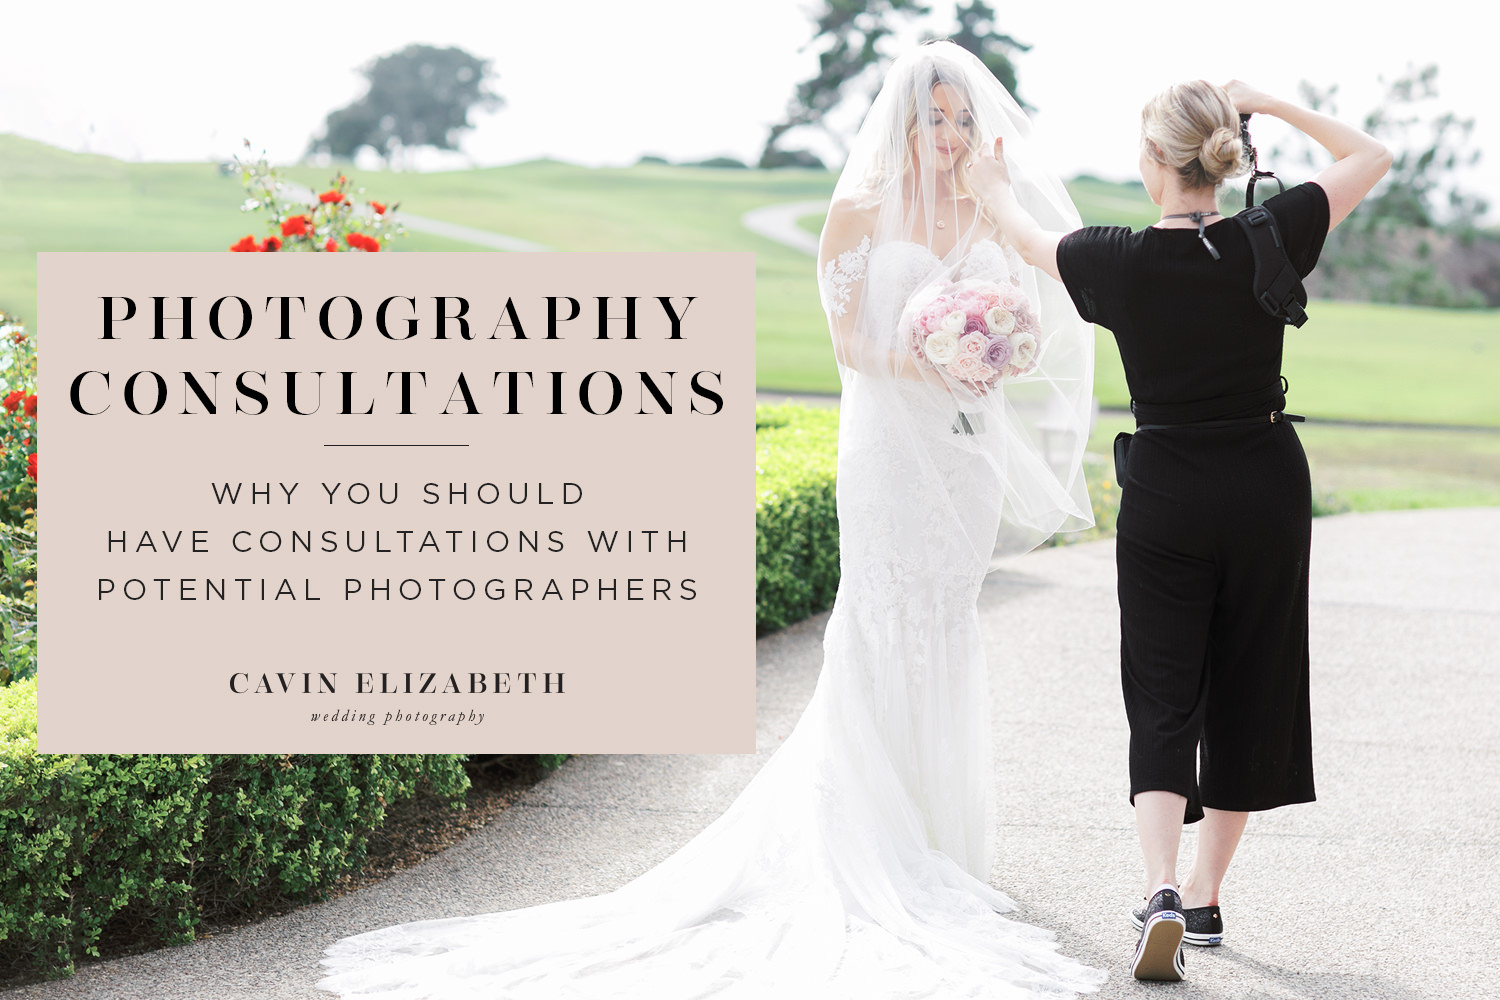 5 Reasons Why You Should Have Wedding Photographer Consultations